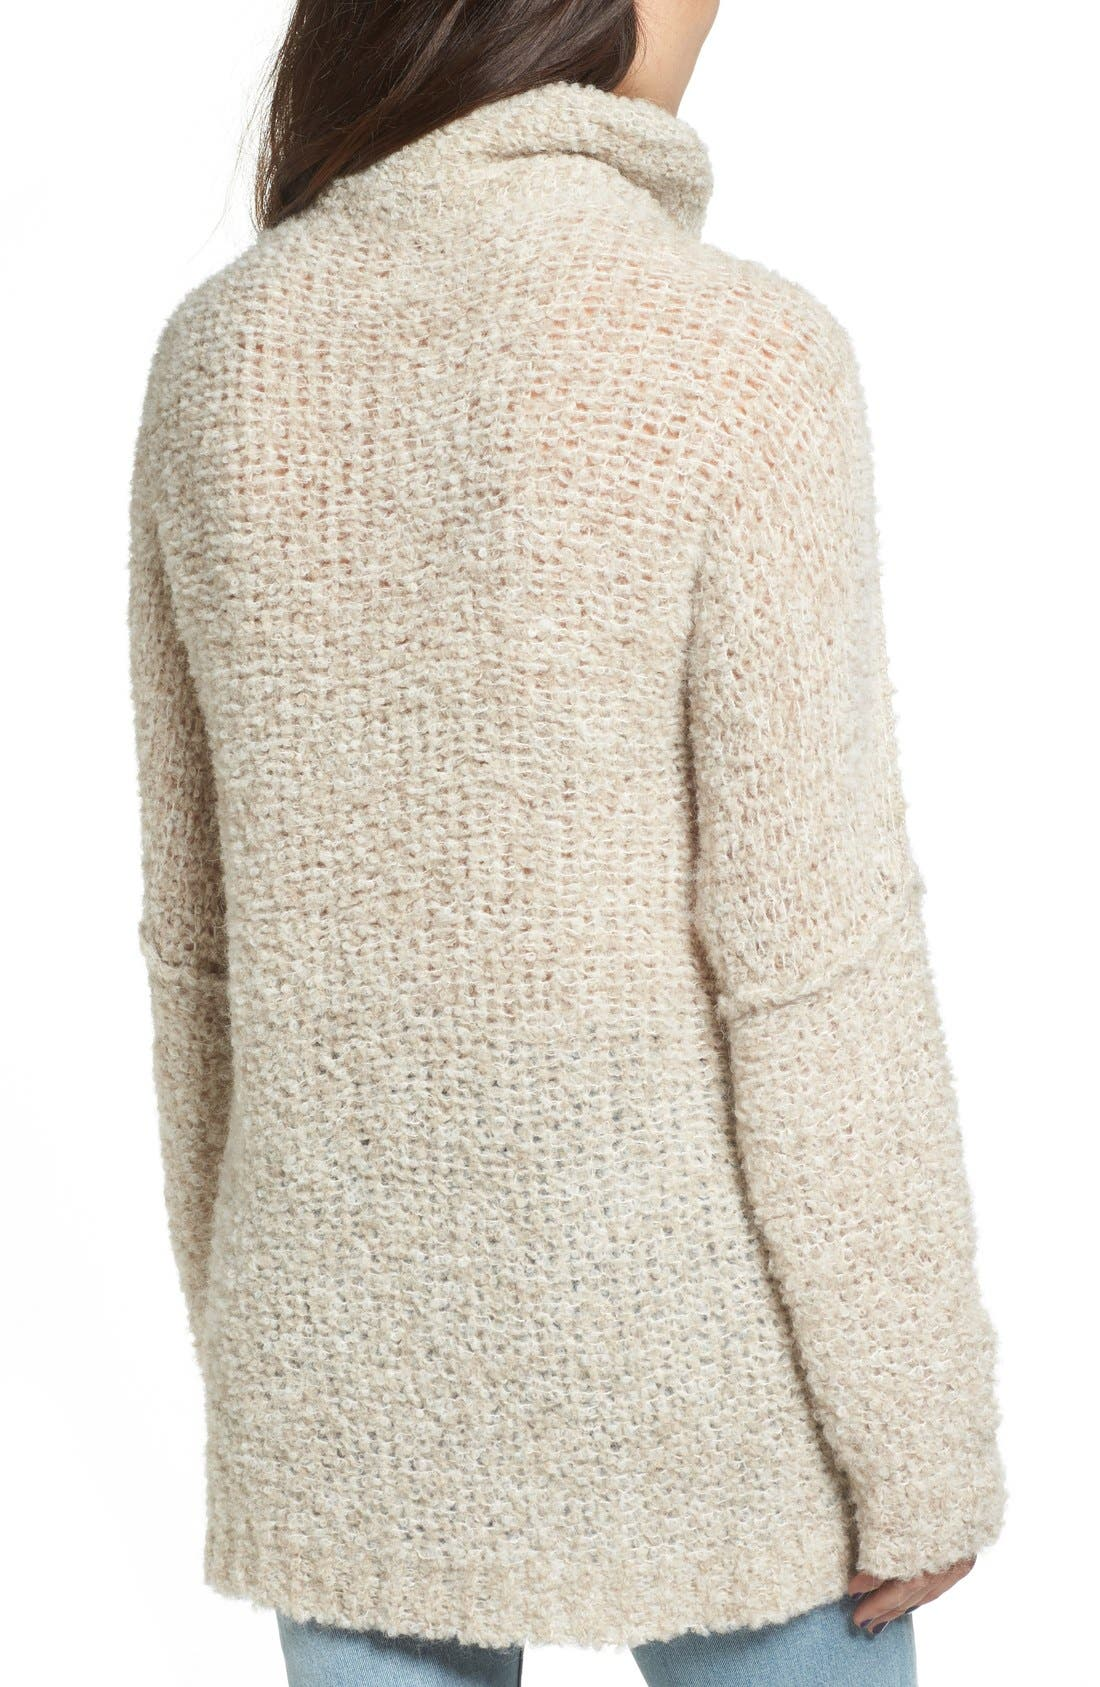 Alternate Image 2  - Free People 'She's All That' Knit Turtleneck Sweater